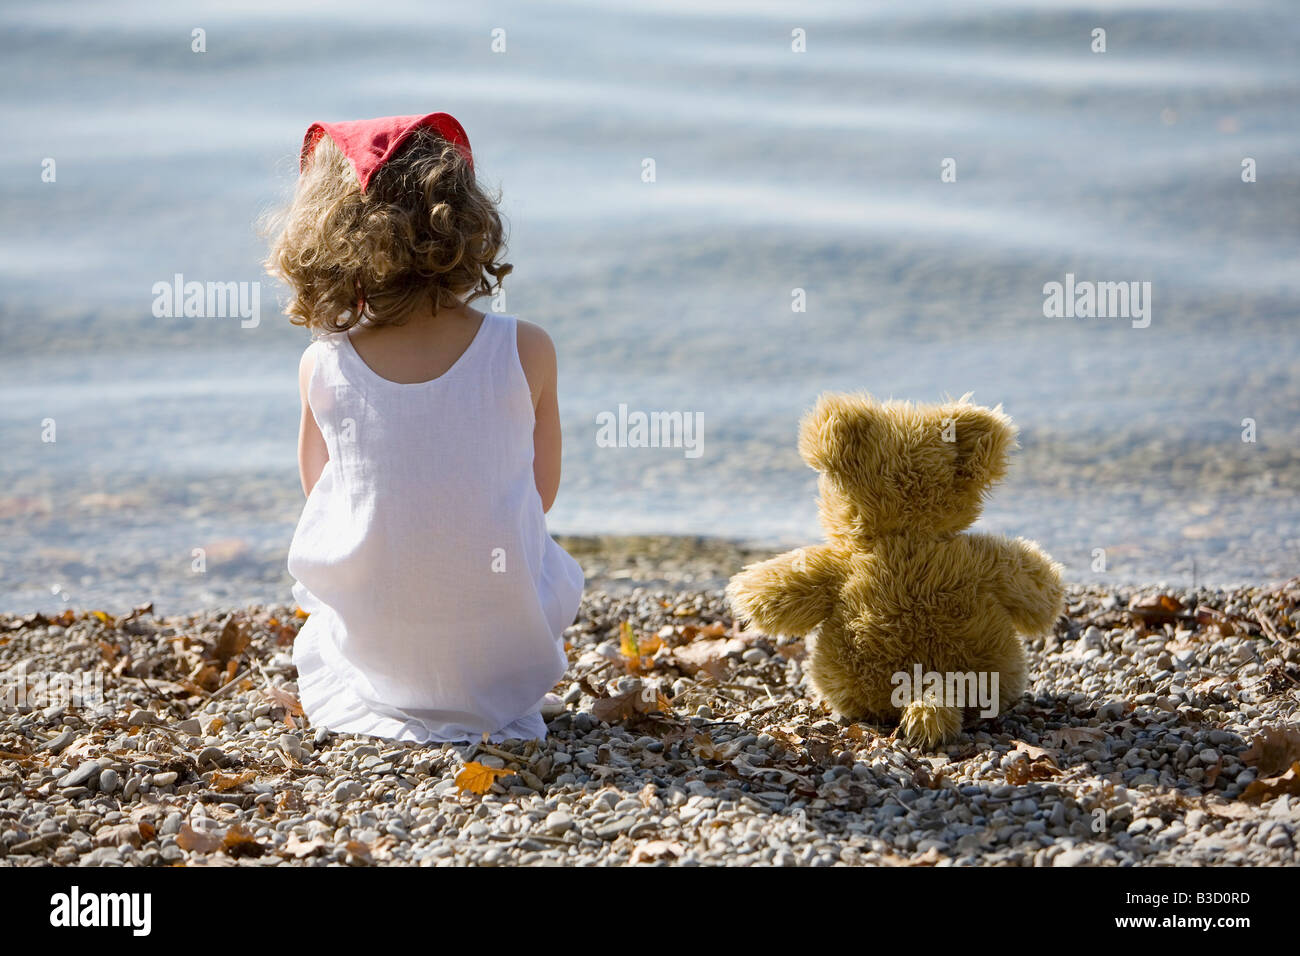 Allemagne, Bavière, Ammersee, little girl (3-4) sitting on beach, vue arrière Photo Stock